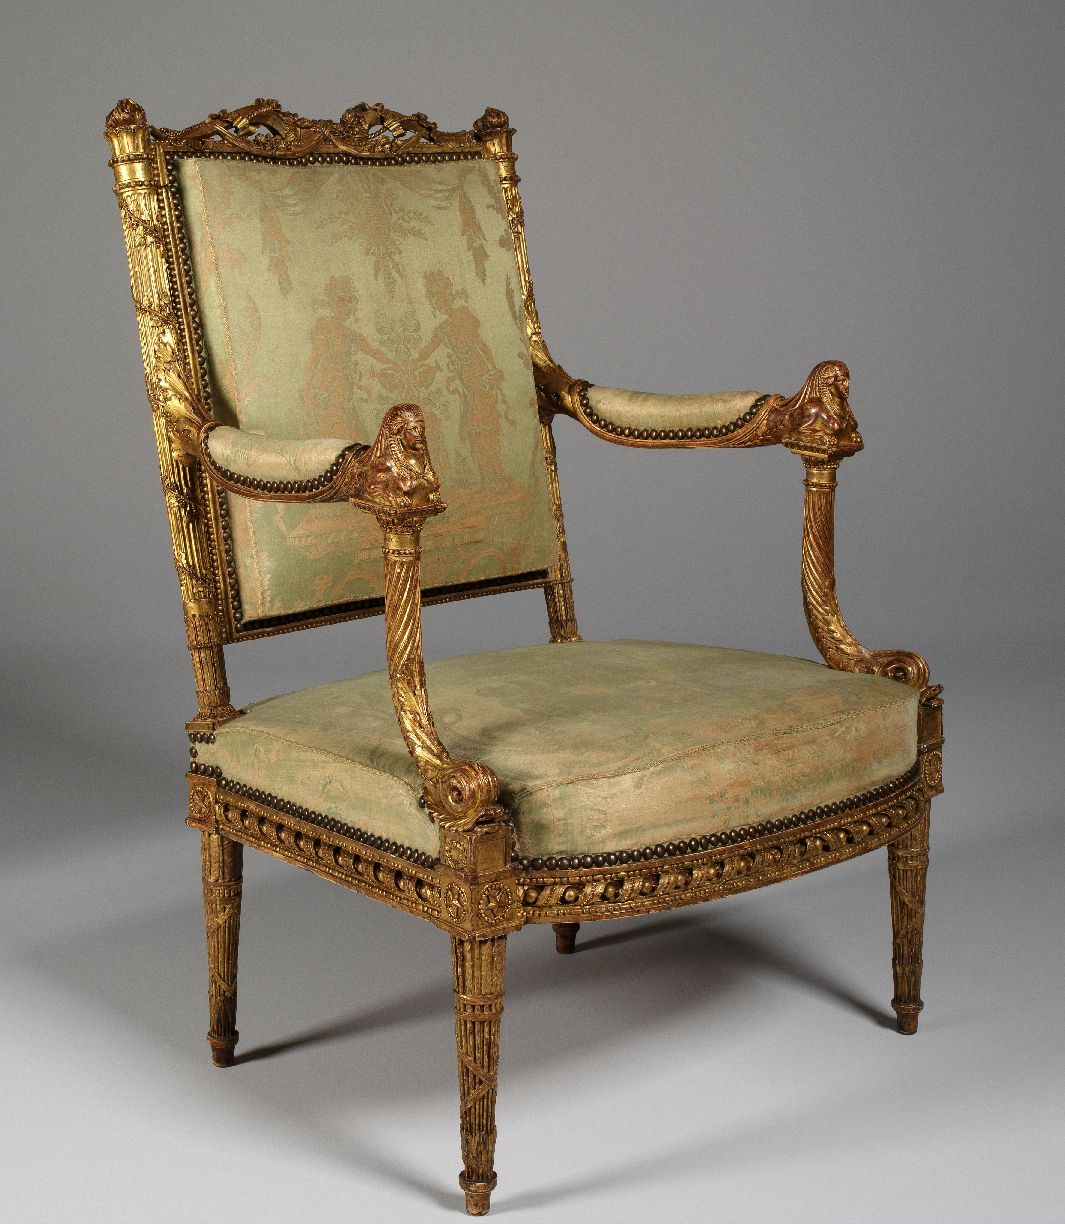 From the Apartments of Queen Marie Antoinette's in Fontainebleau Palace, this chair is the only one left of a set commissioned from the master cabinetmaker Georges Jacob in the years 1785-1786.